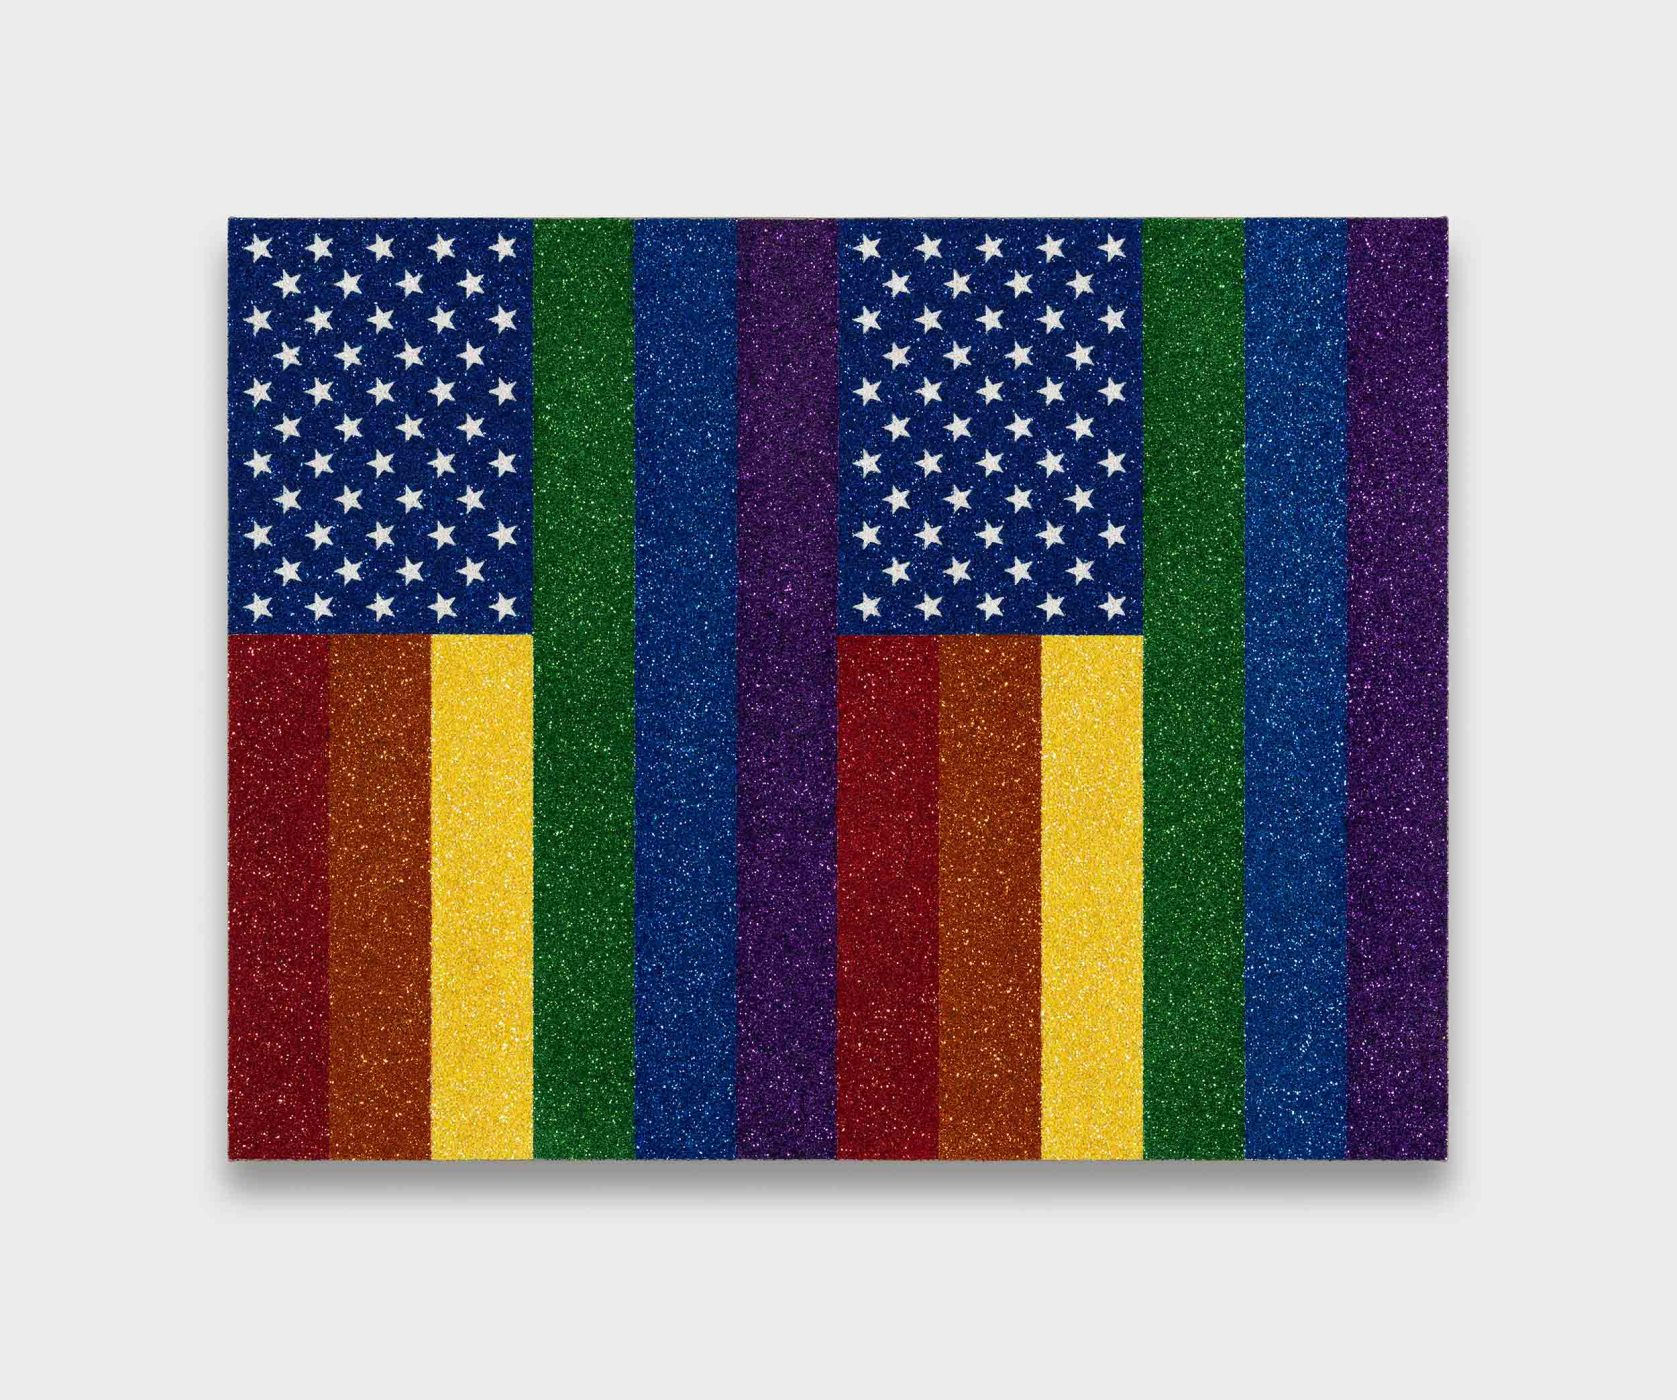 "<div class=""title""><em>Two Rainbow American Flags for Jasper in the Style of the Artist's Boyfriend</em>, 2017</div><div class=""medium"">glitter and enamel on linen</div><div class=""dimensions"">68.8 x 83.8 x 3.2 cm<br />27 x 33 x 1 1/4 in.</div>"